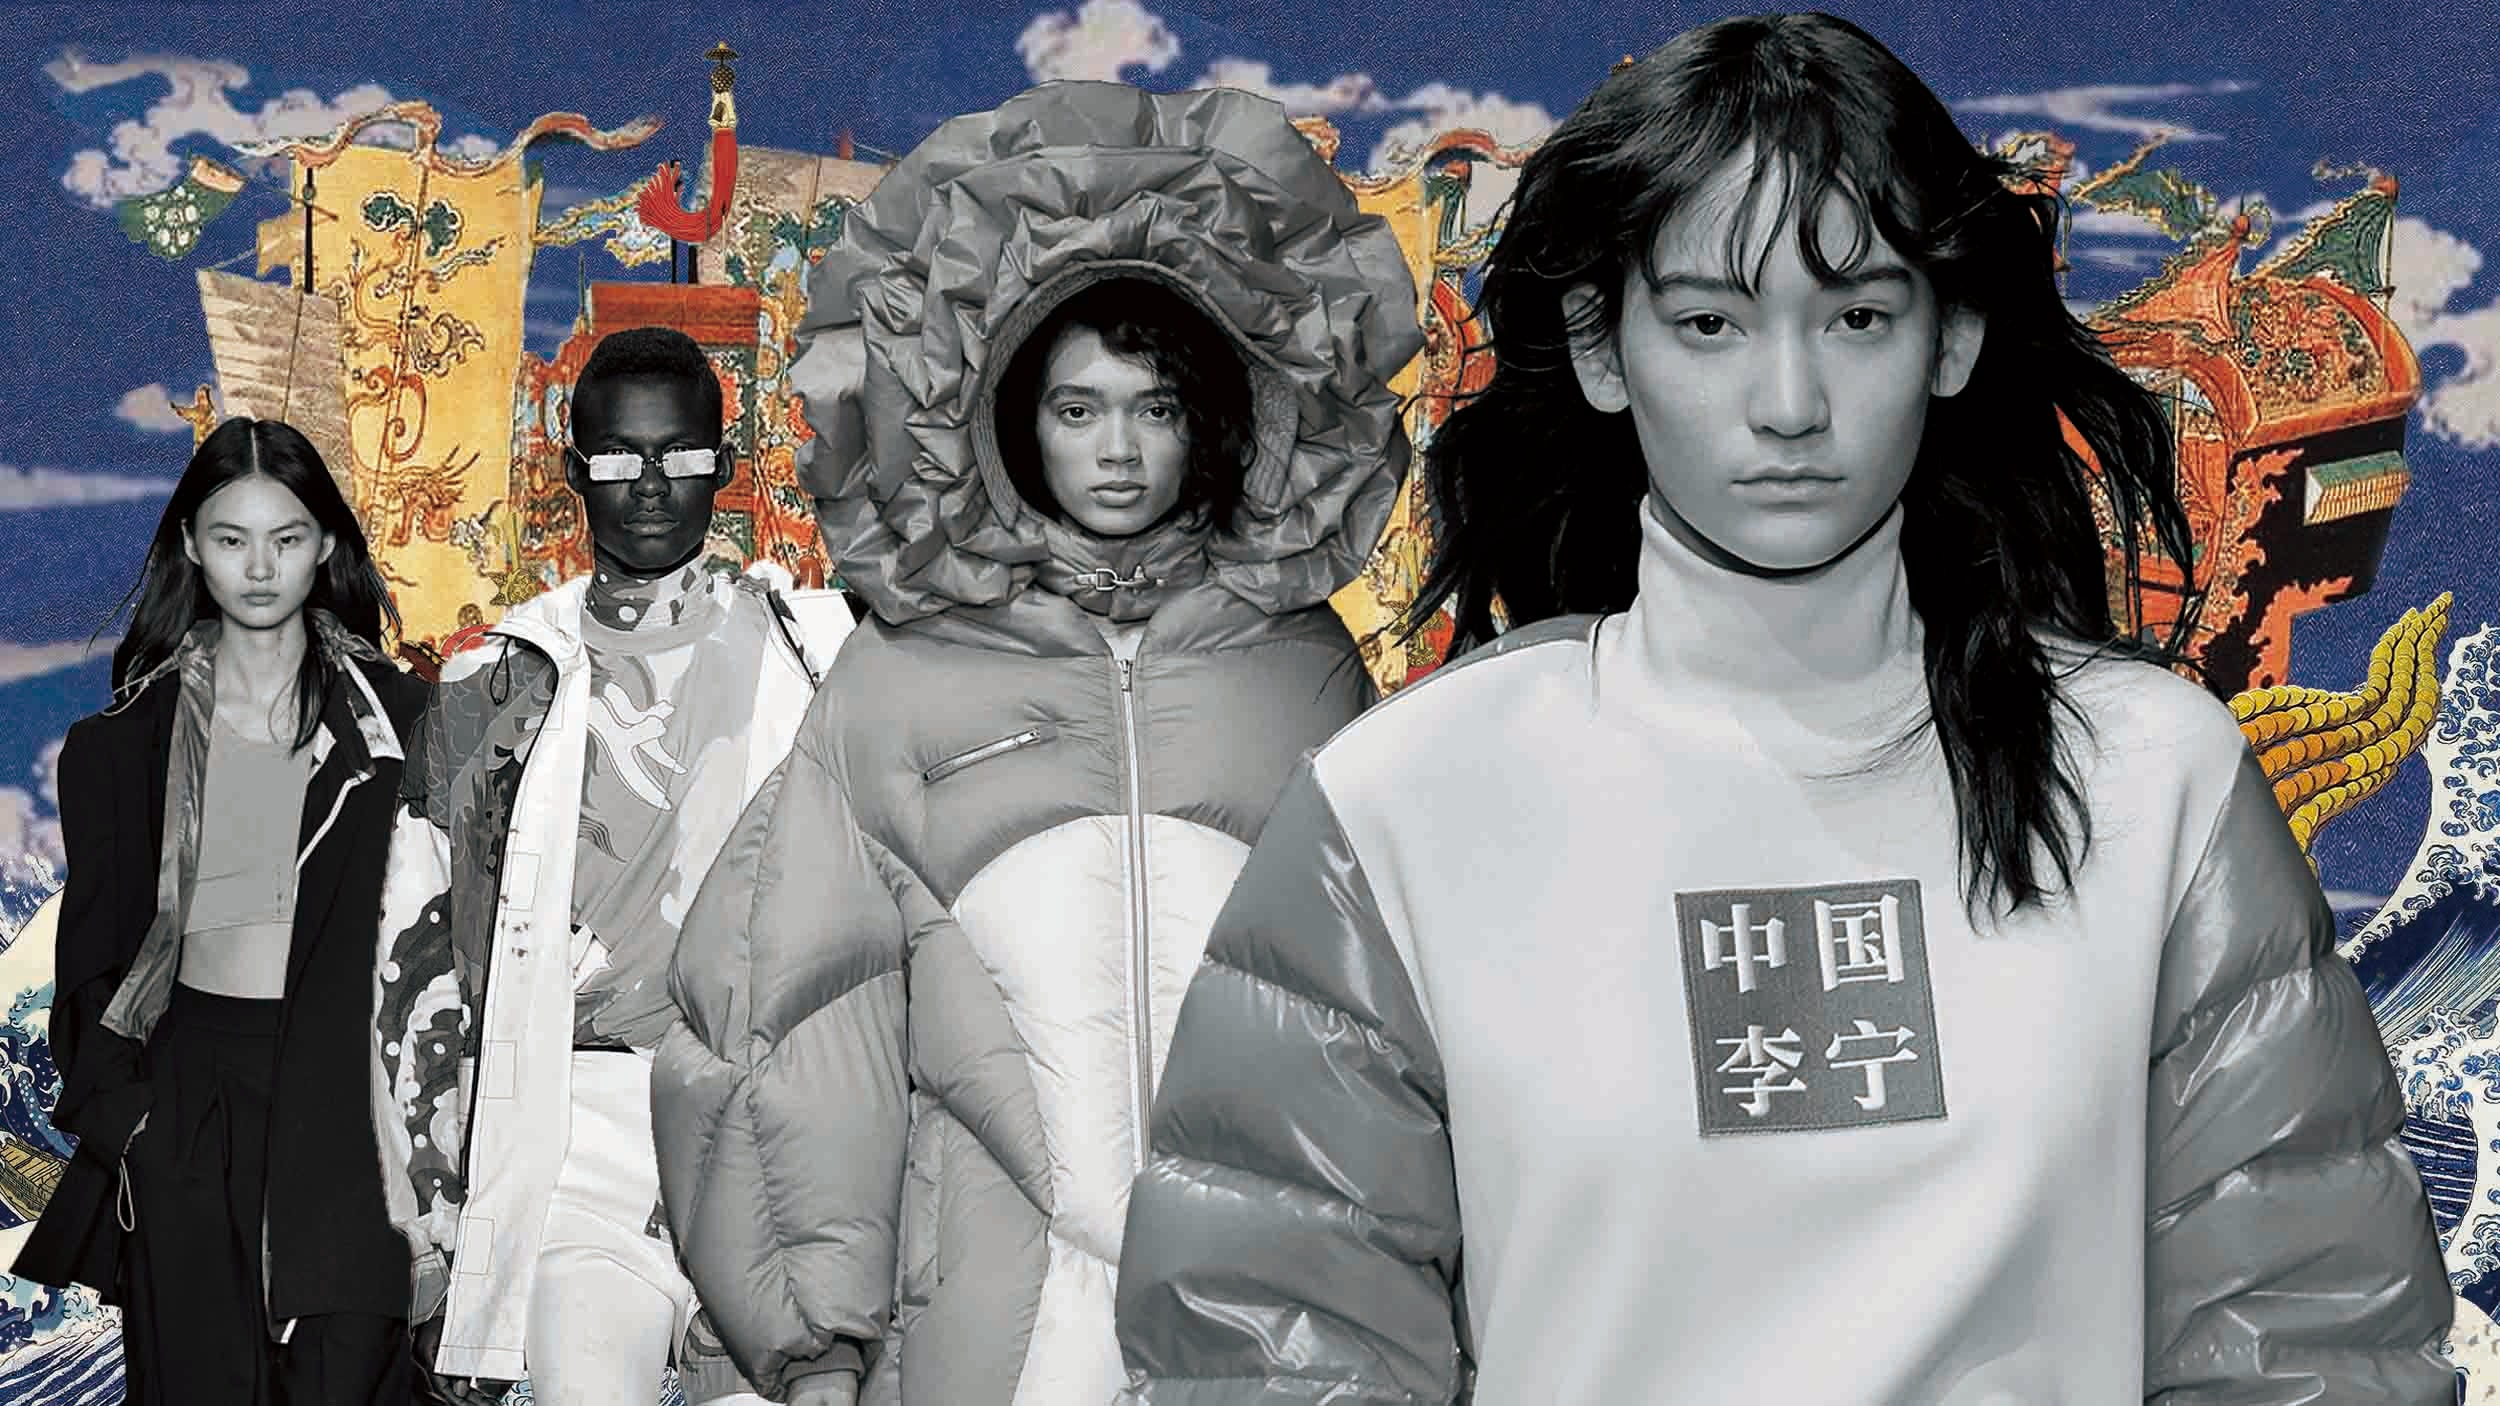 JNBY, Angel Chen, Chen Peng and Li Ning's collections from previous China Day runways | Illustration by BoF